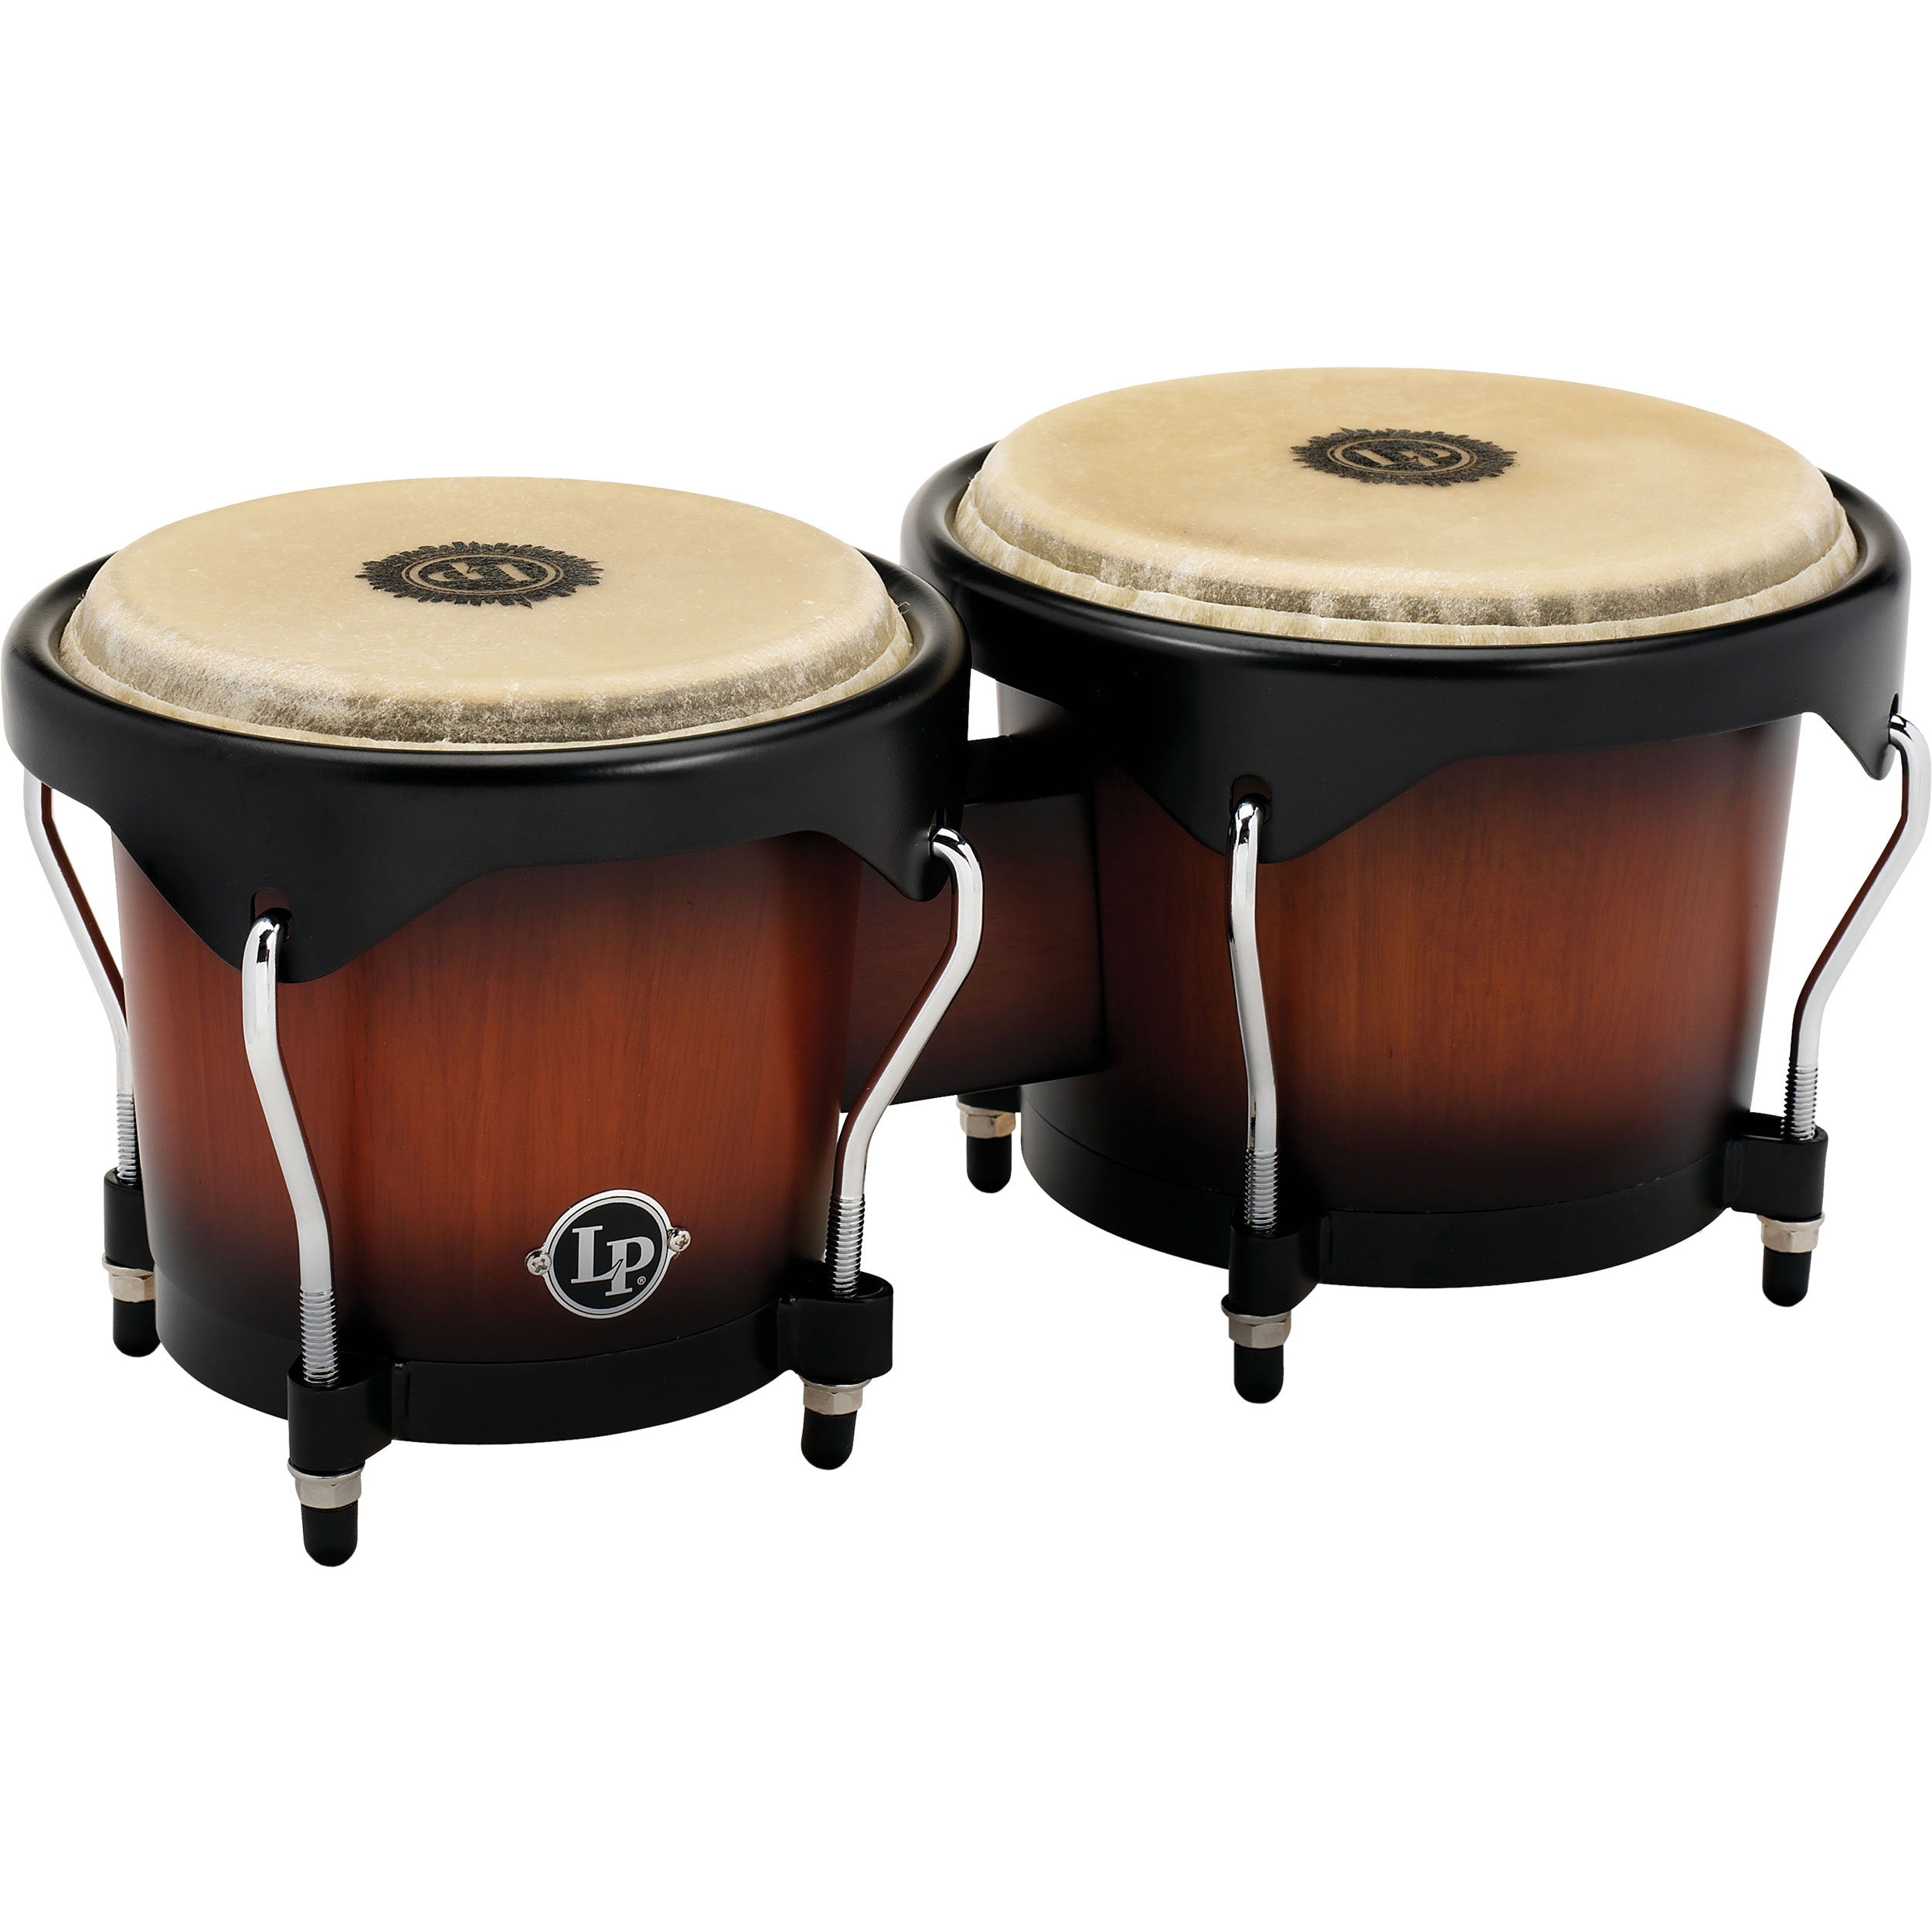 "LP 6"" & 7"" City Bongos in Vintage Sunburst"